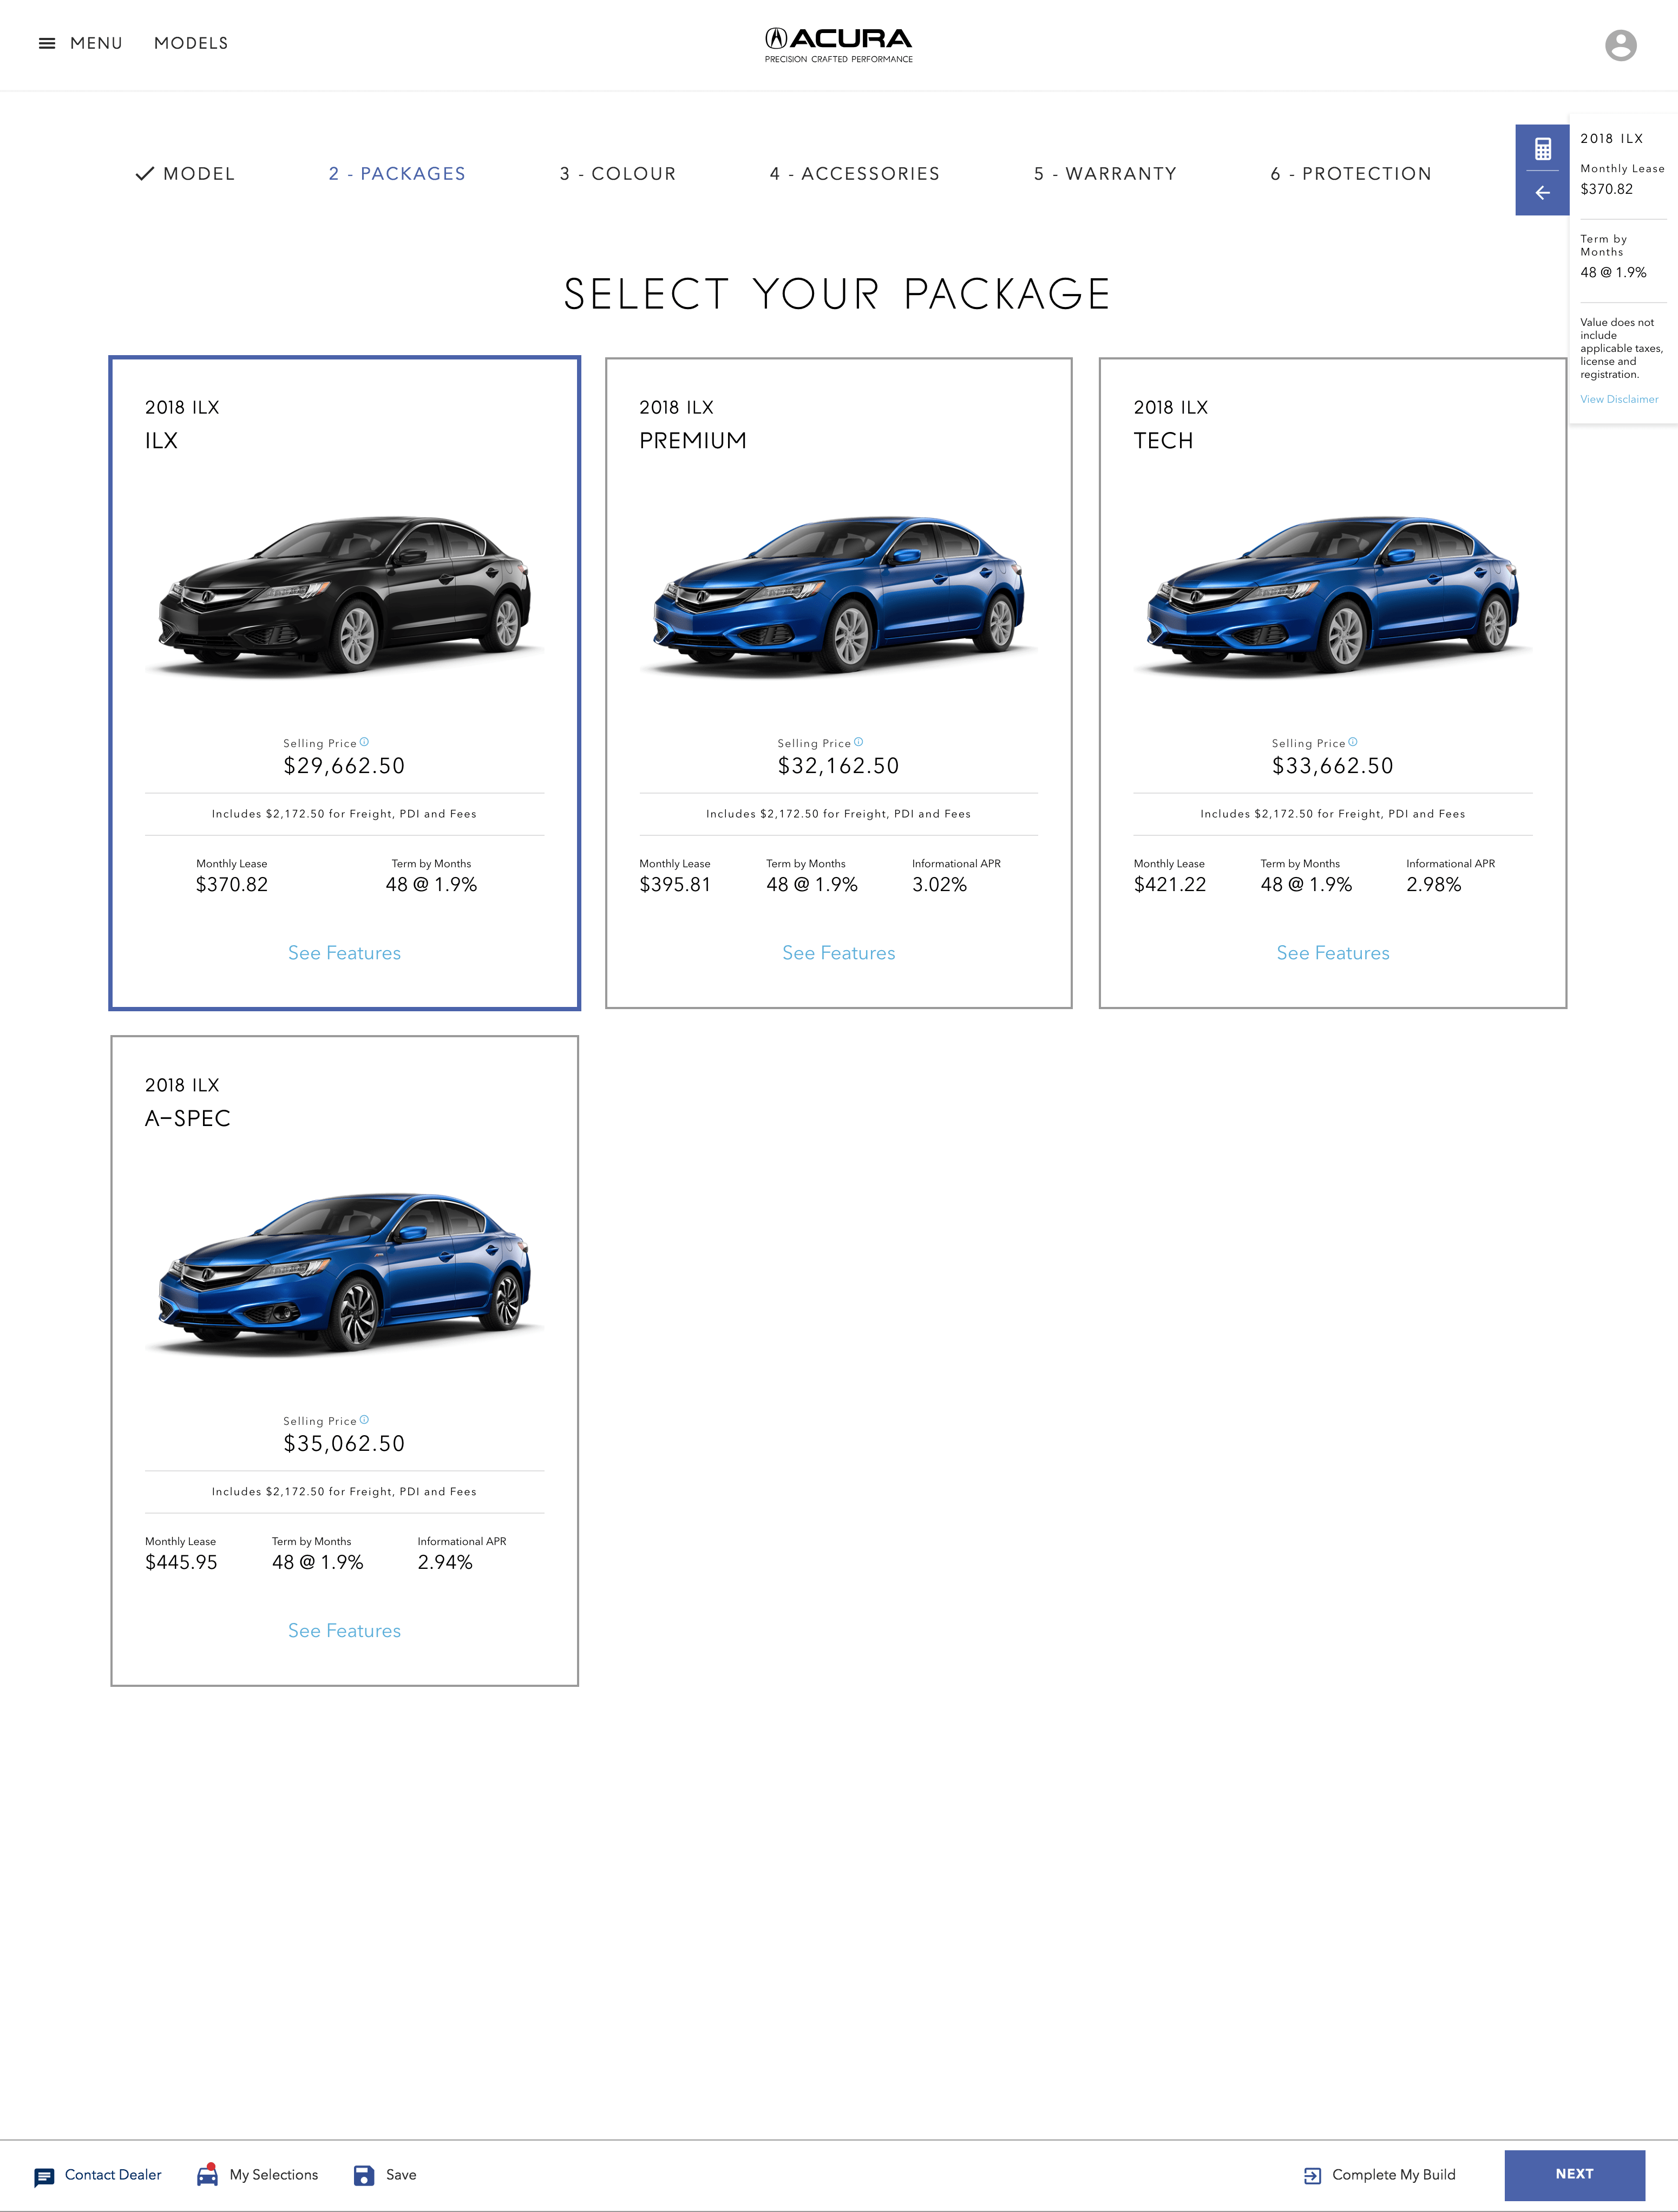 Screen capture of the Acura Build and Price app